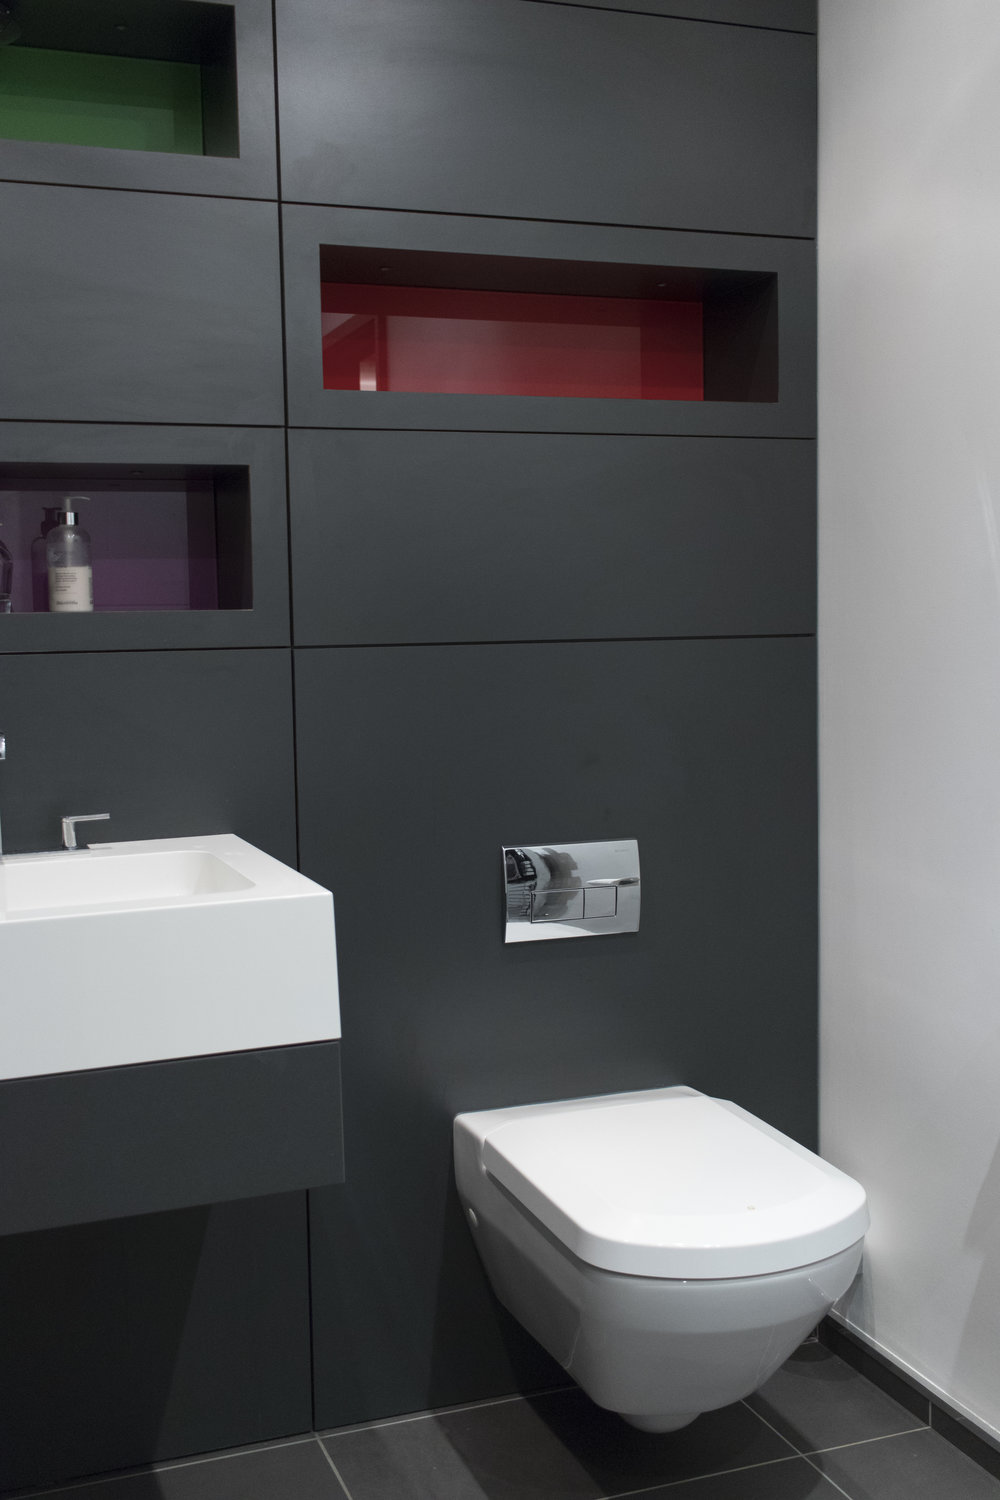 Precision - The panelling and shelves within this bathroom were made precisely to fit the space.